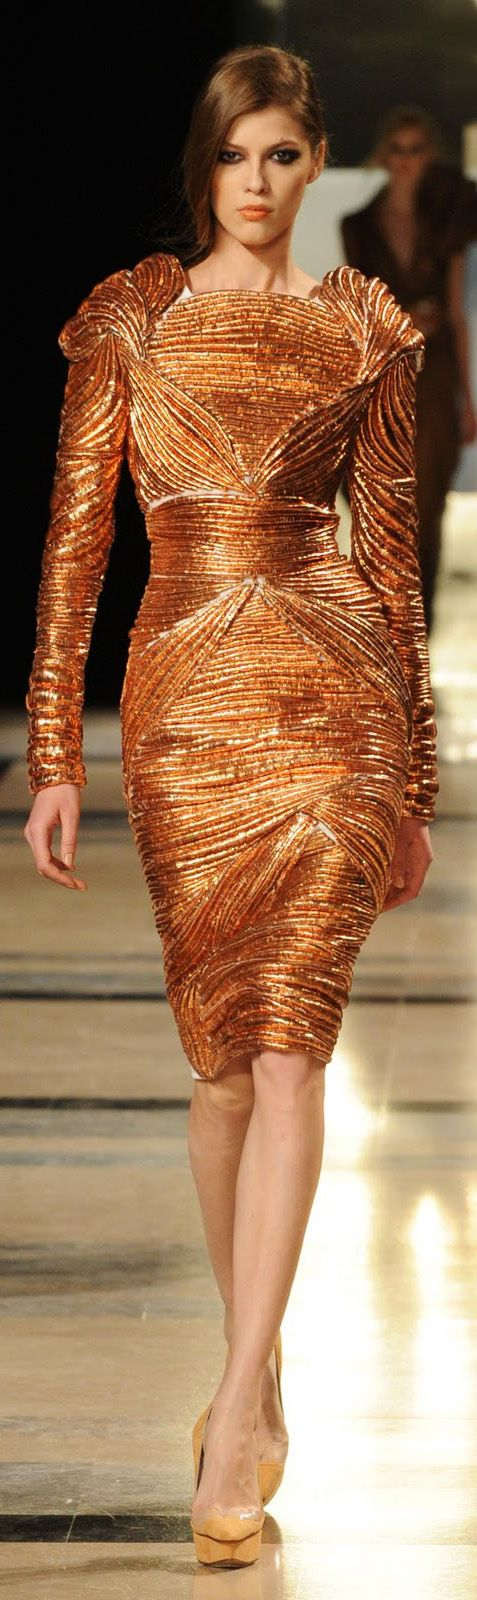 Stephane Rolland S/S 2011little different neckline, maybe rounded off a little.The color and the way the fabic has been gathered. Beautiful lines.